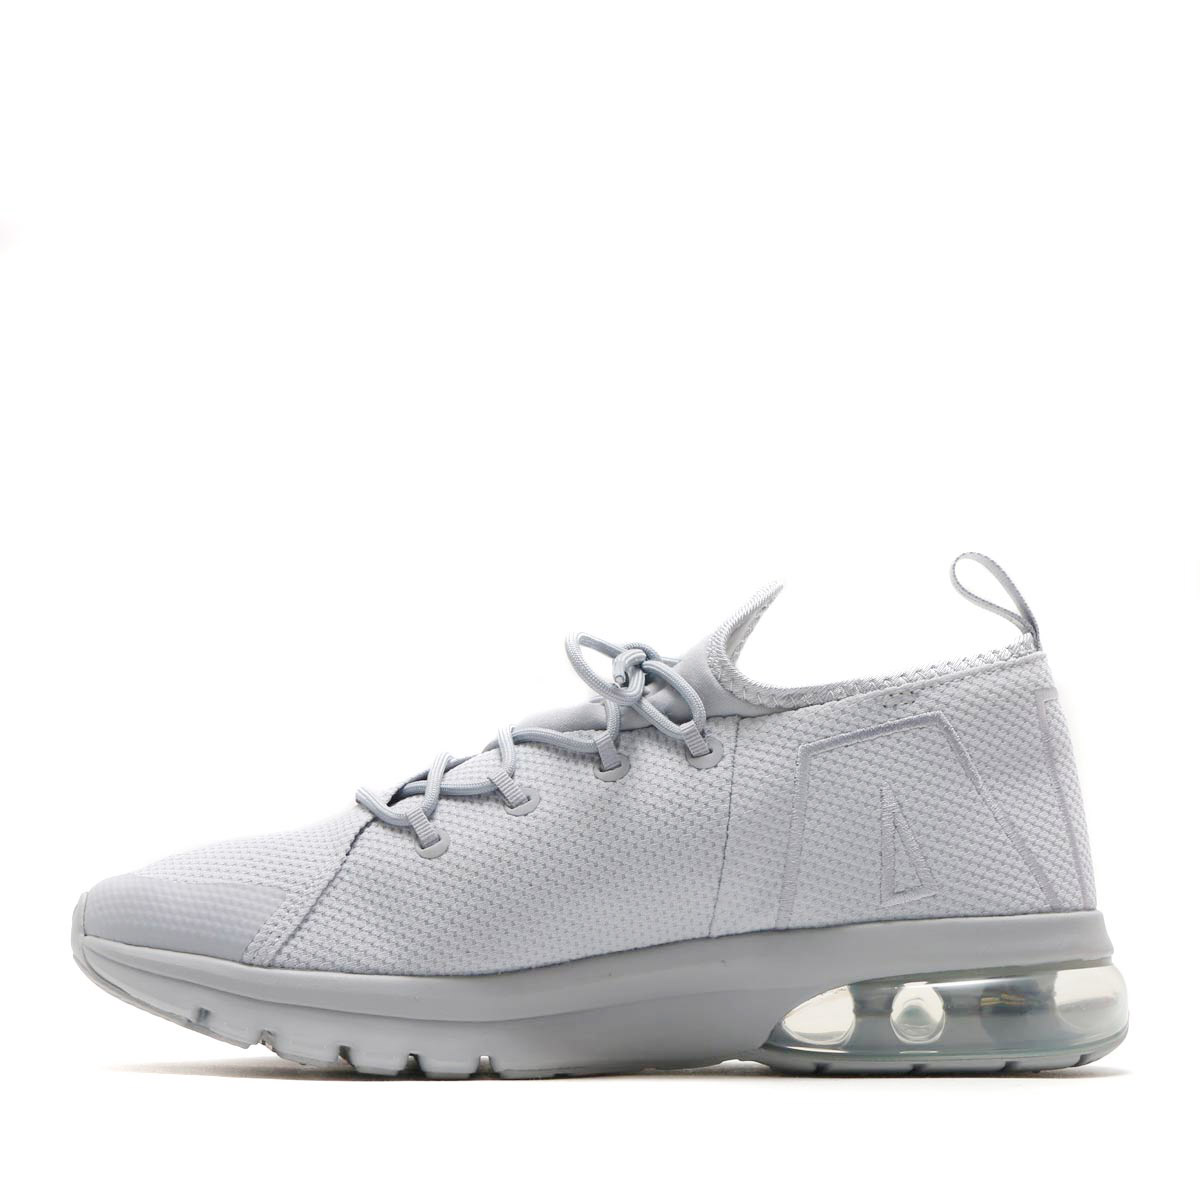 a967986df58e95 NIKE AIR MAX FLAIR 50 (Kie Ney AMAX flare 50) (WOLF GREY WOLF GREY-COOL GREY)  17HO-S